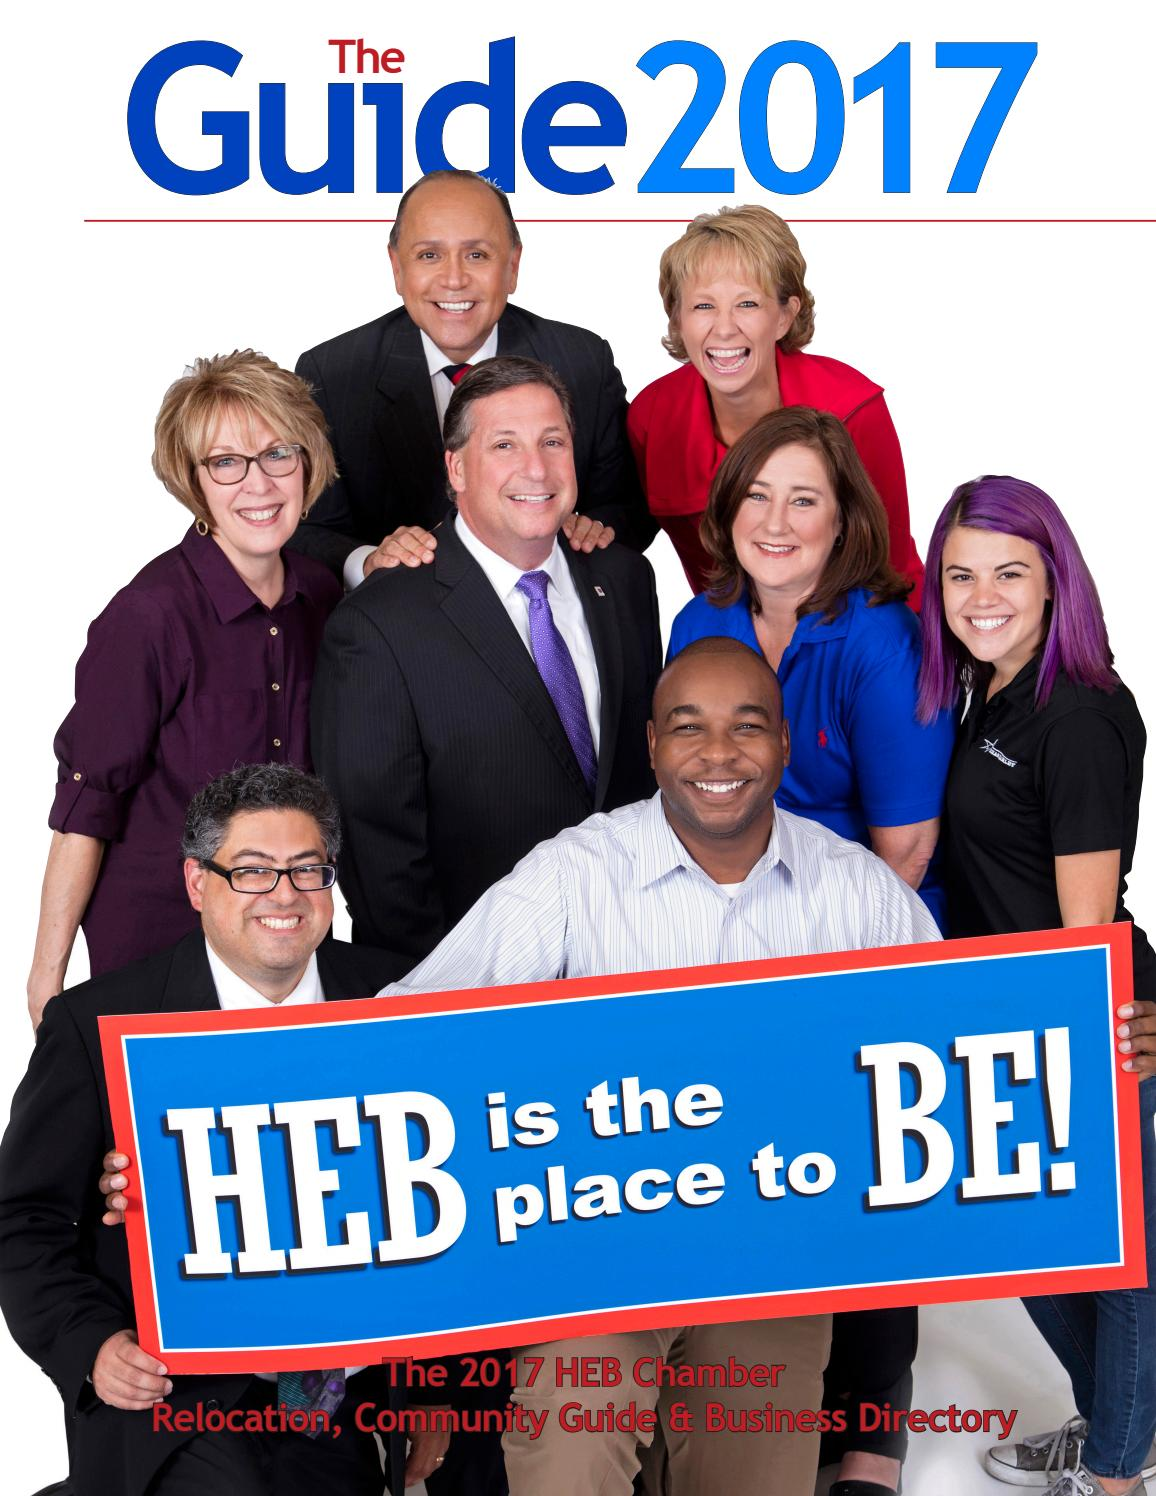 heb the guide web edition by chamber marketing partners inc heb the guide 2015 web edition by chamber marketing partners inc issuu